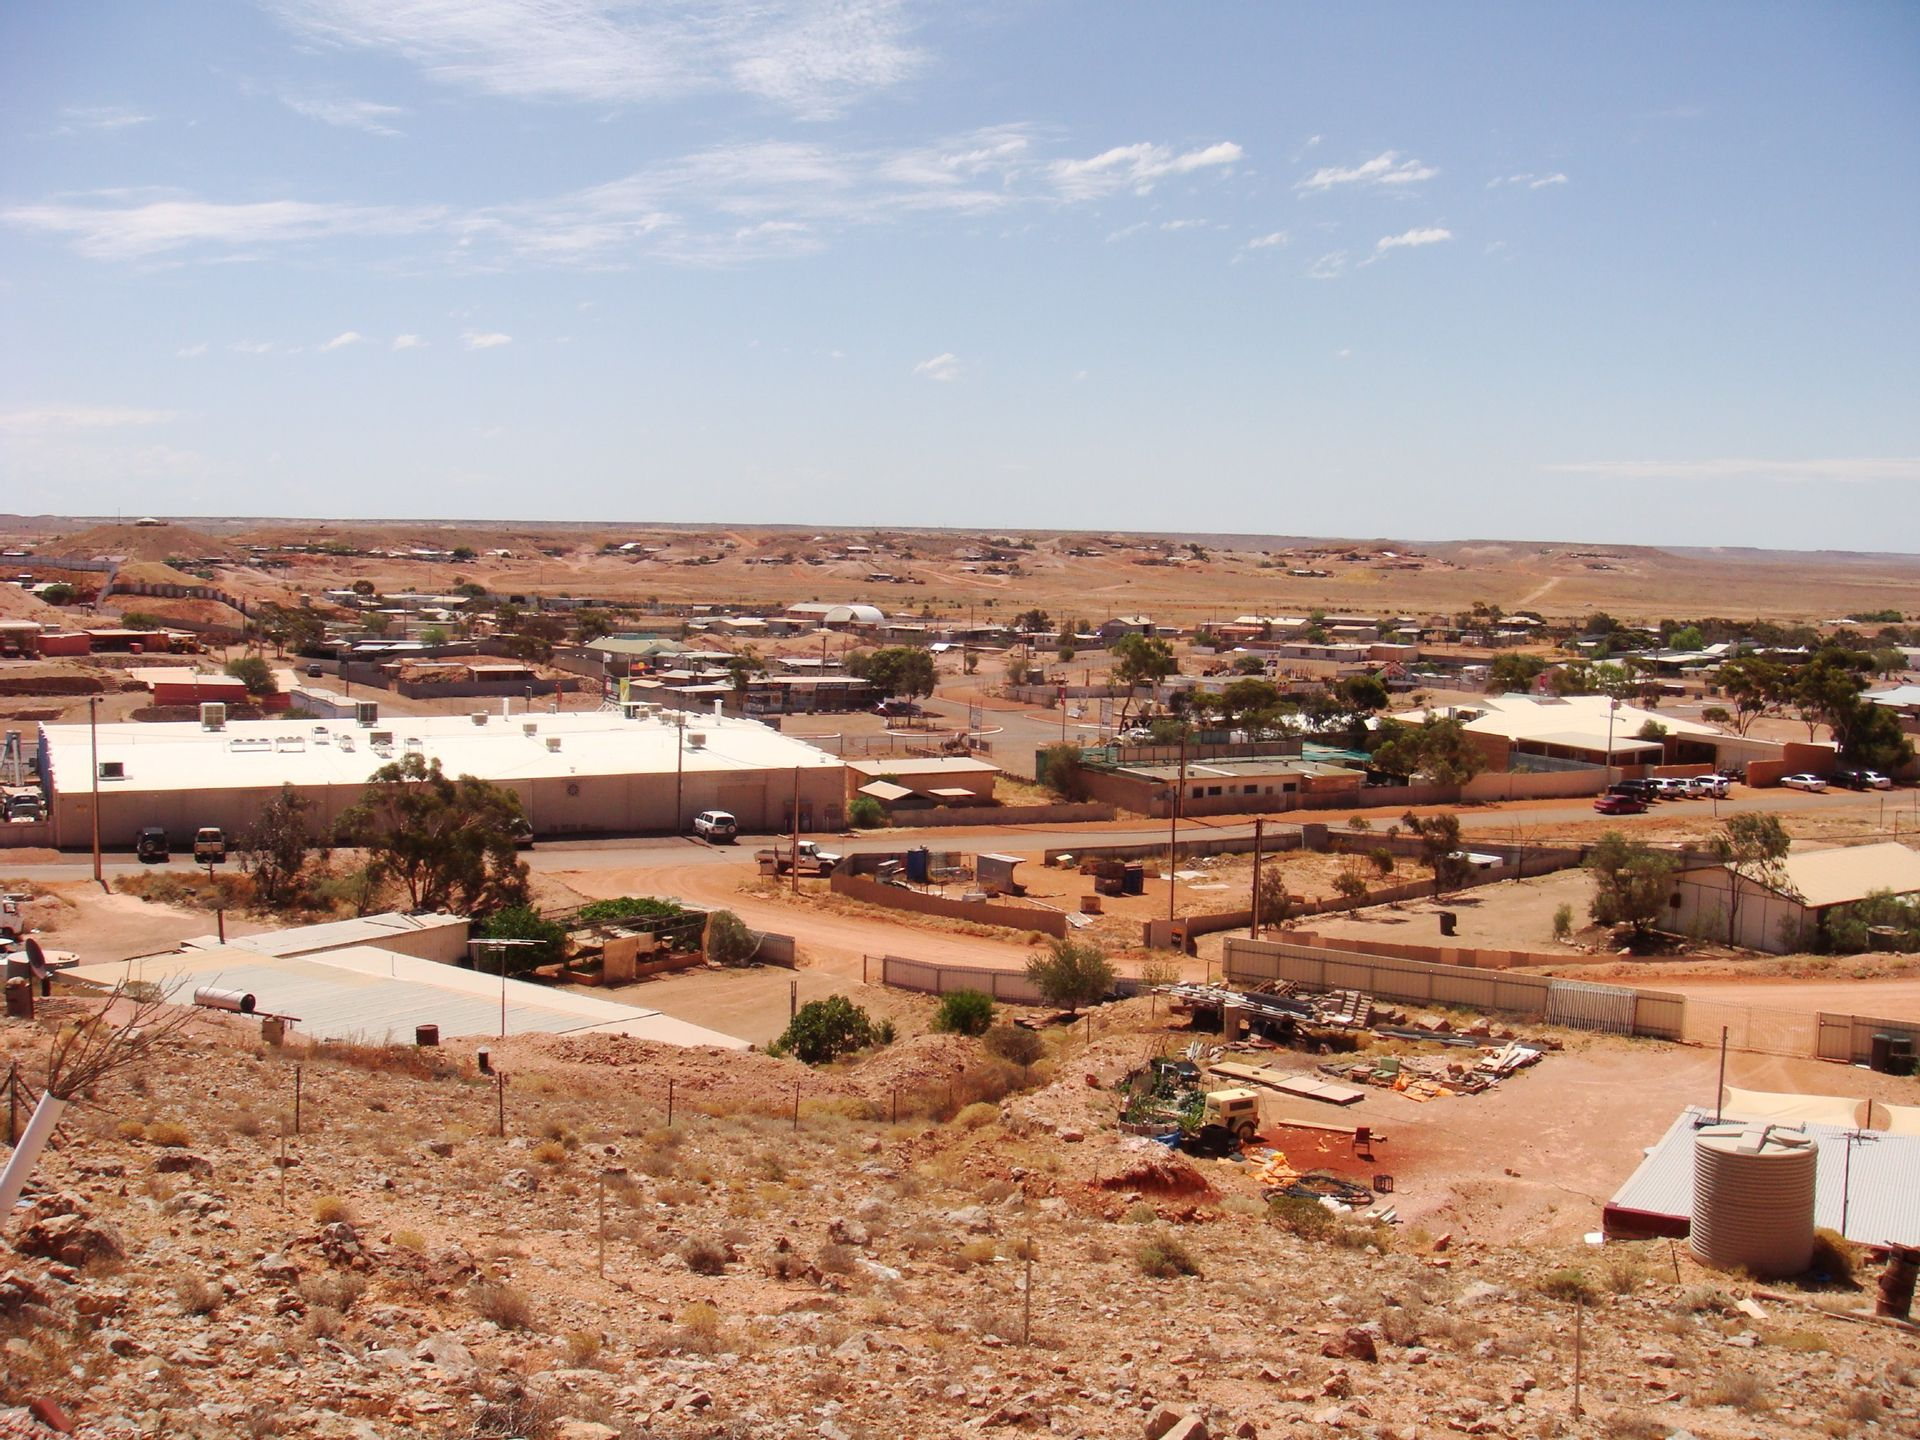 Travis Travel Coober Pedy South Australia Solene